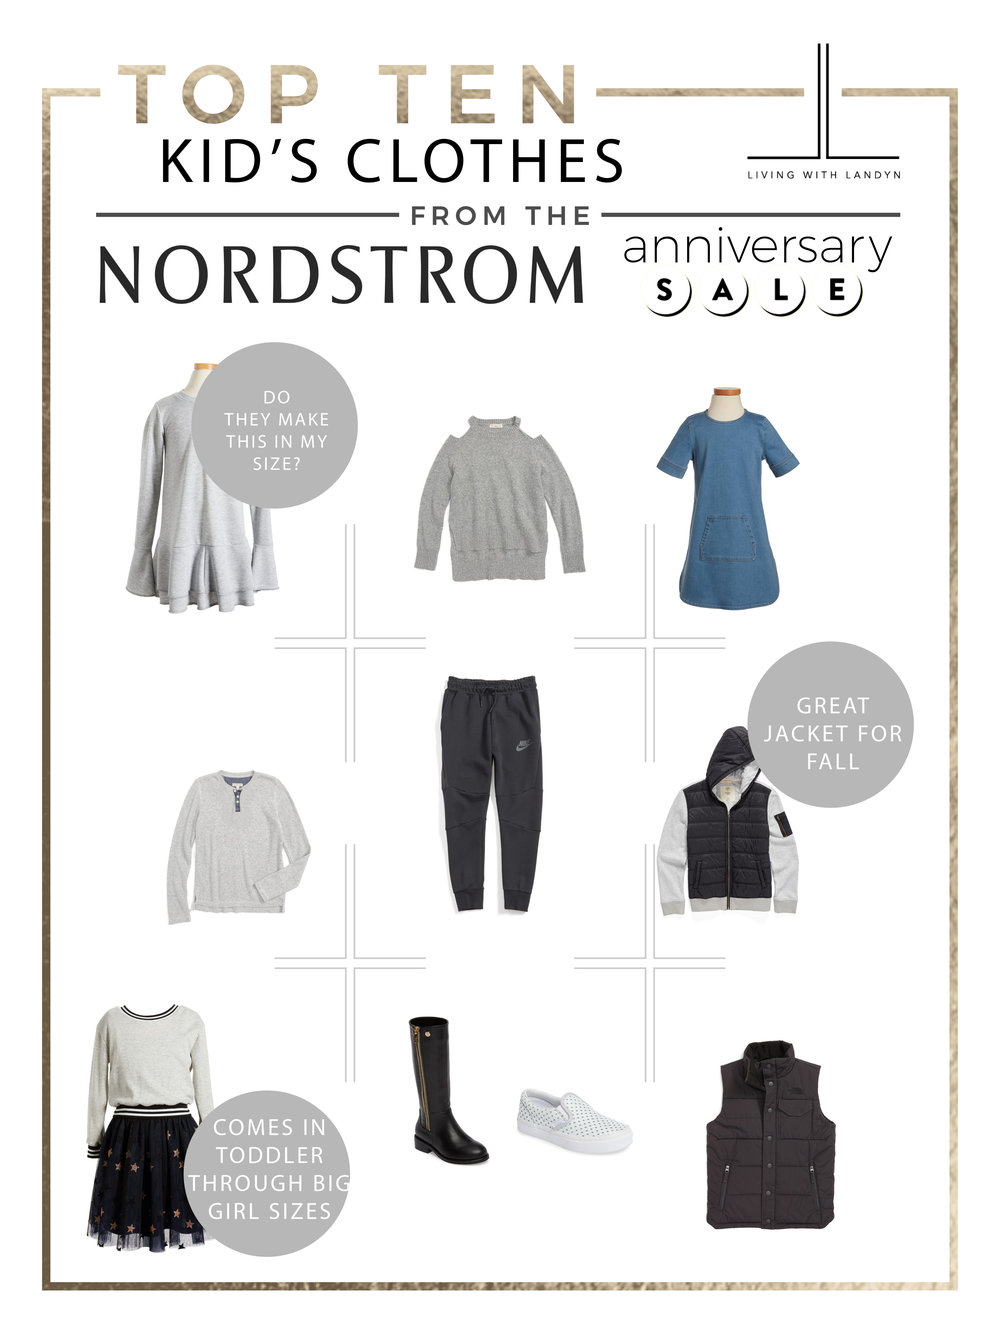 TOP 10 PICKS KIDS CLOTHES NORDSTROM ANNIVERSARY SALE